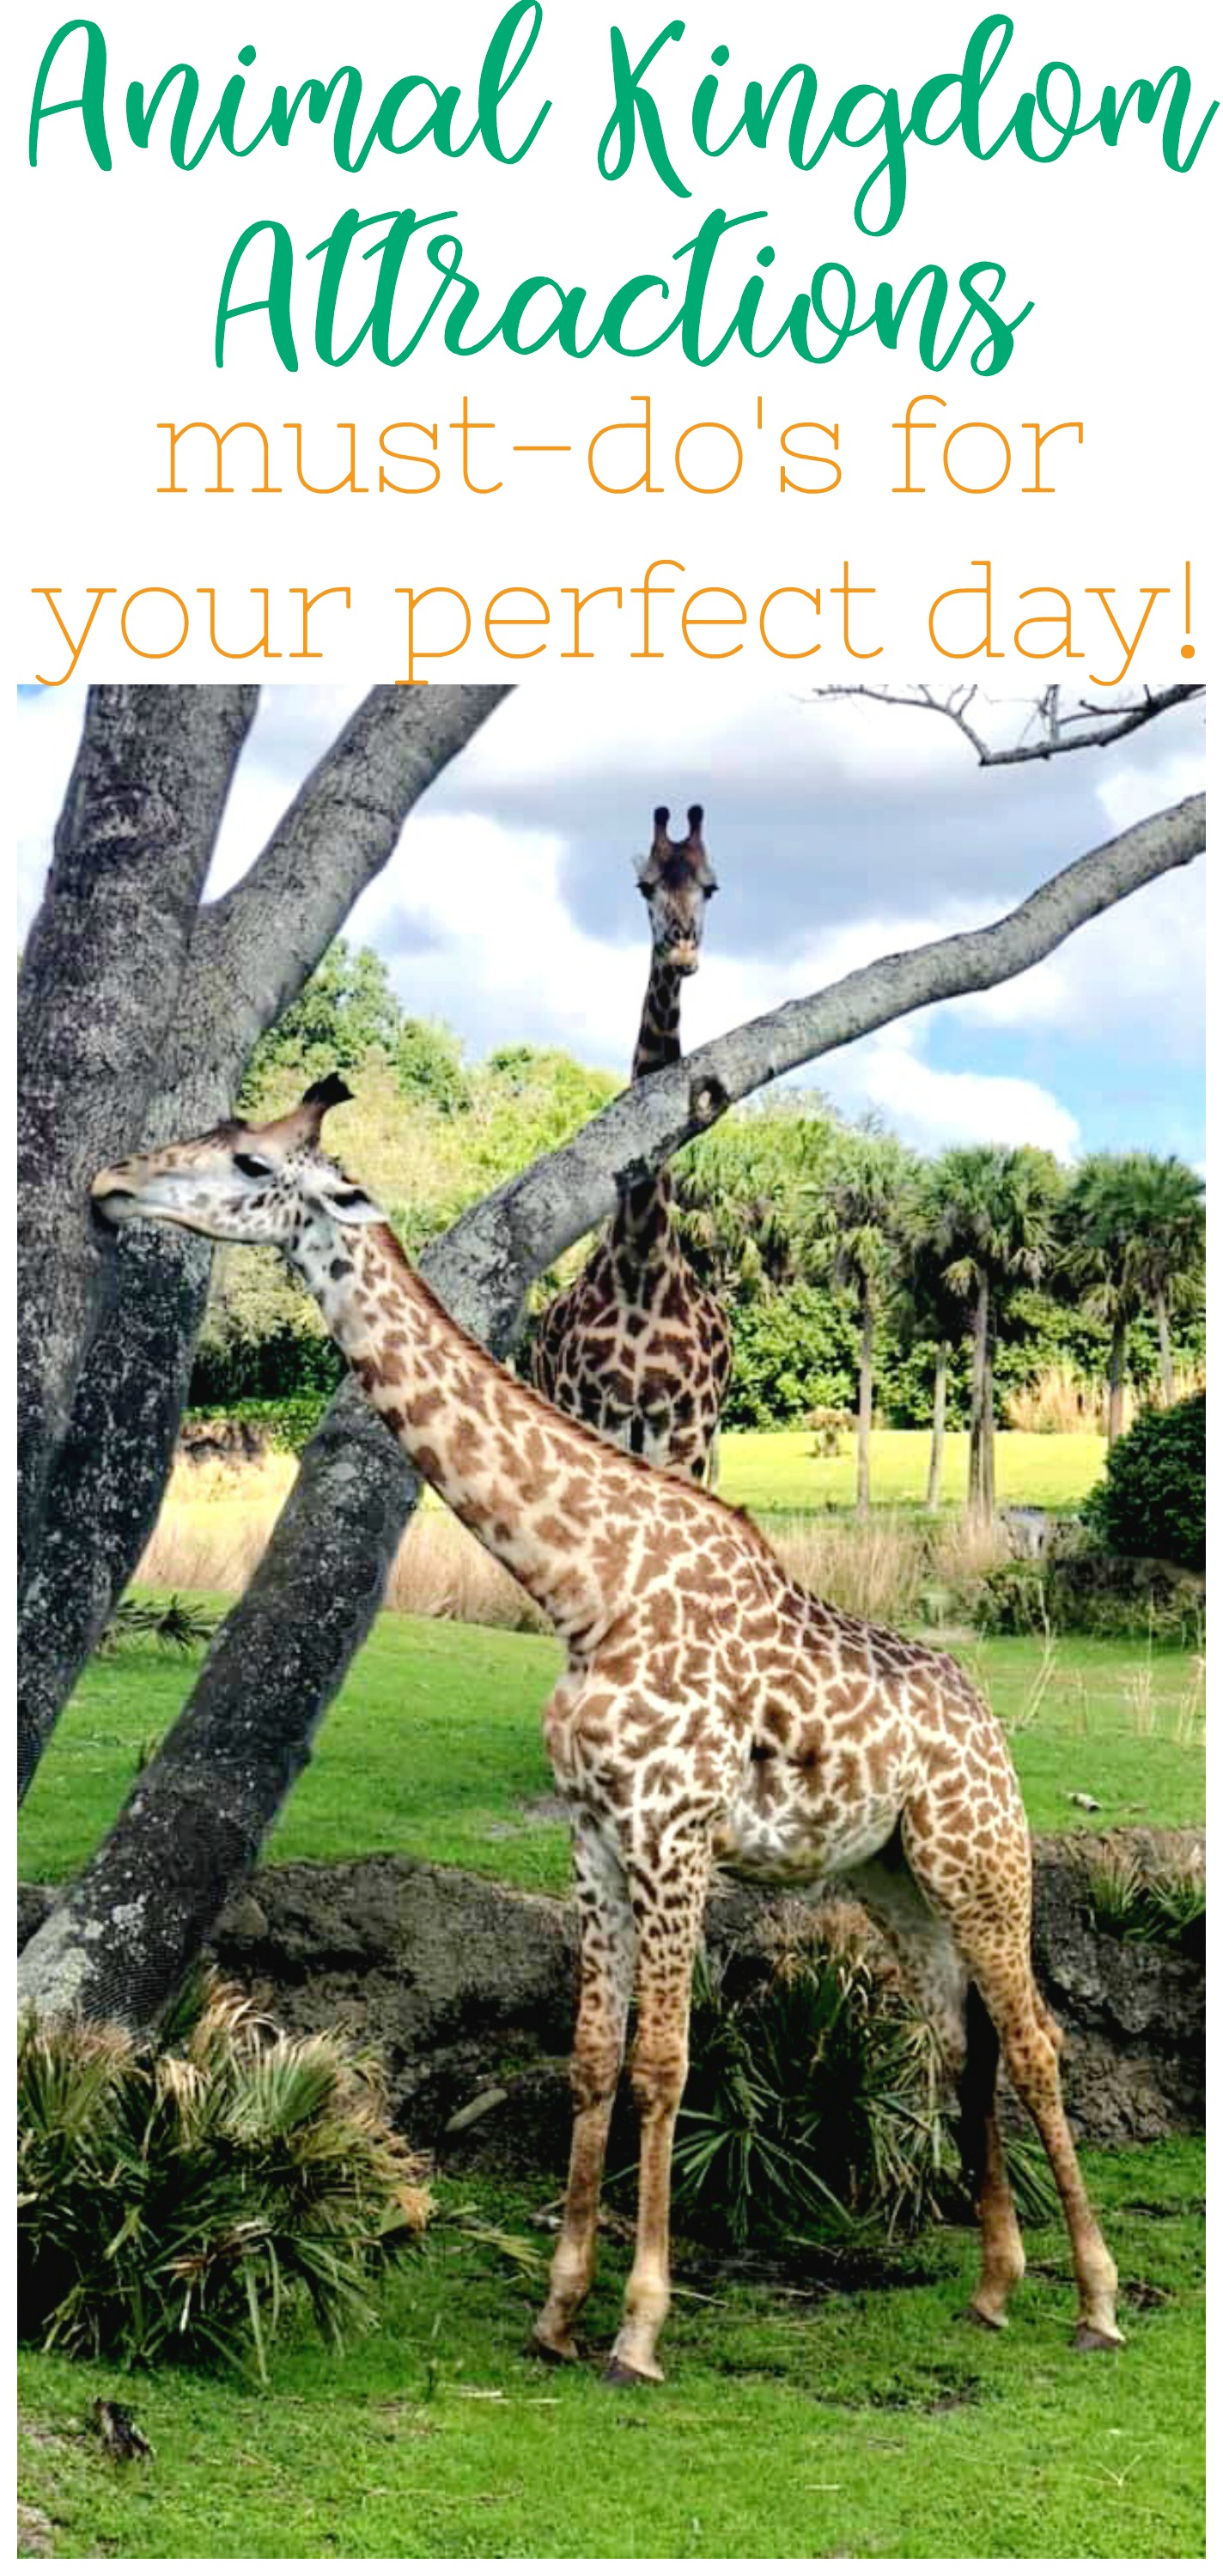 must-do Animal Kingdom Attractions, Animal Kingdom One Day, Animal Kingdom Guide, Best Animal Kingdom Attractions, #NowMoreThanEver #DisneySMC #VisitPandora #AnimalKingdom #DisneyTips #DisneyParks #DisneyWorld